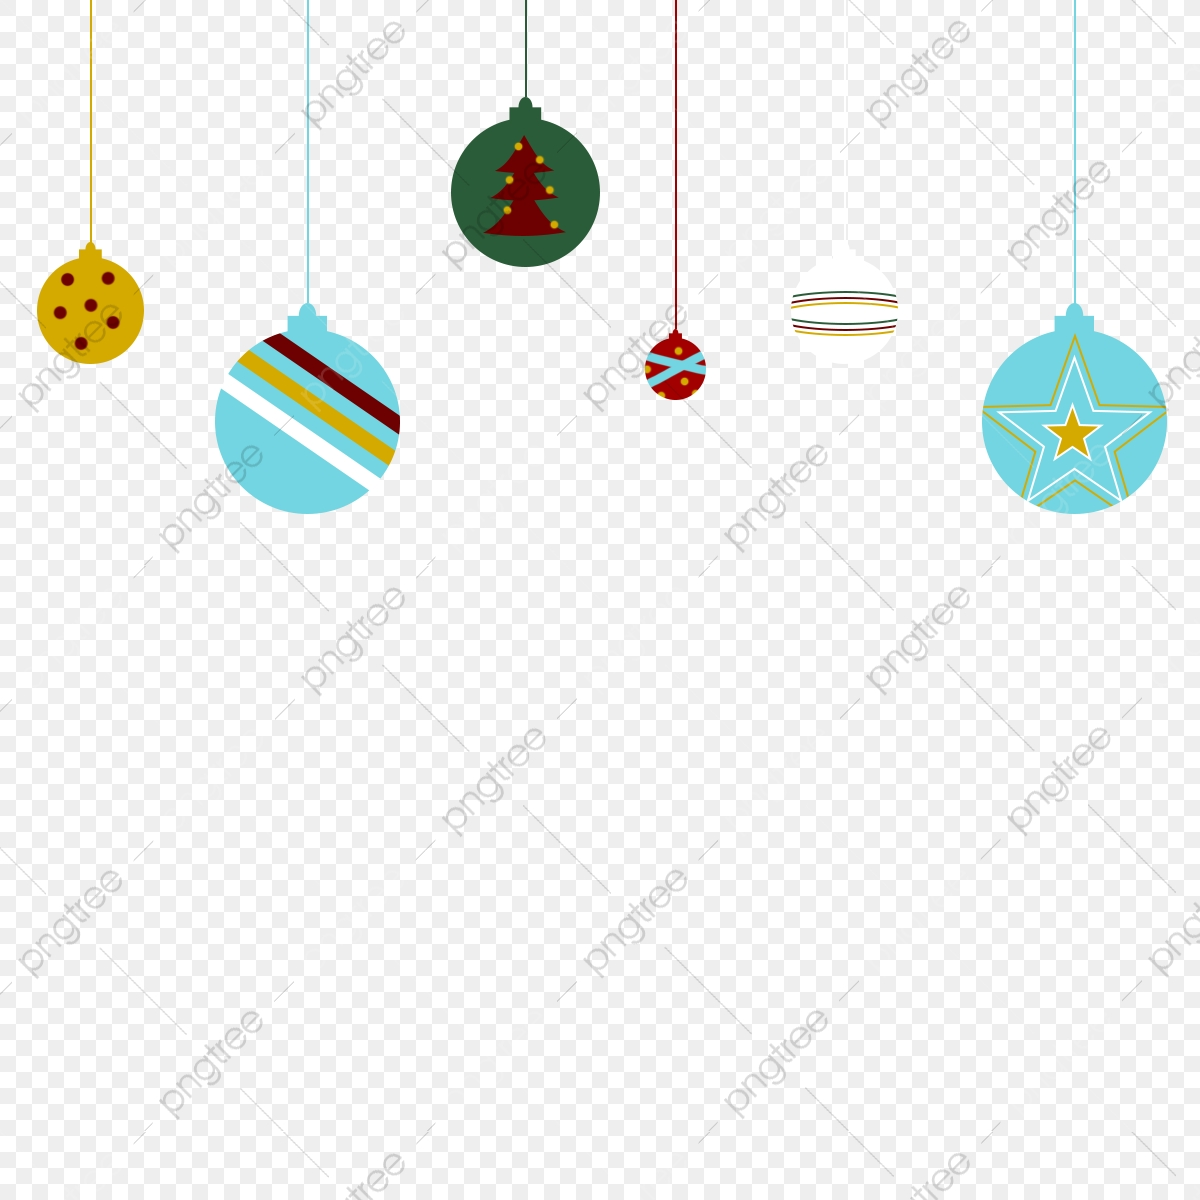 Colorful Christmas Tree Balls With Painting Christmas Tree Balls Png Transparent Clipart Image And Psd File For Free Download